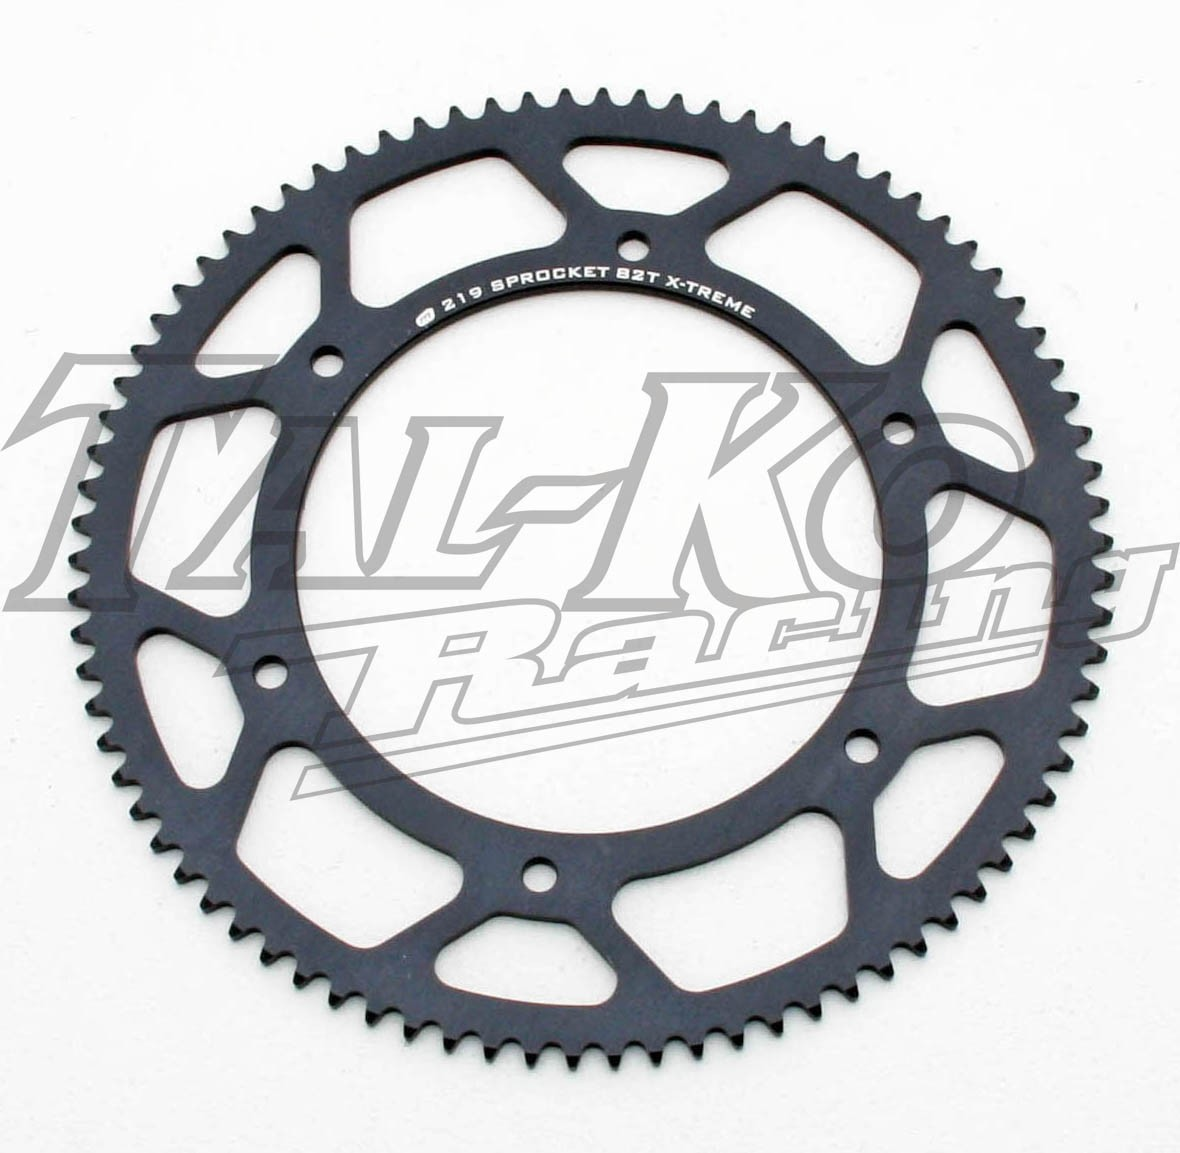 X-TREME AXLE SPROCKET 219 82T N